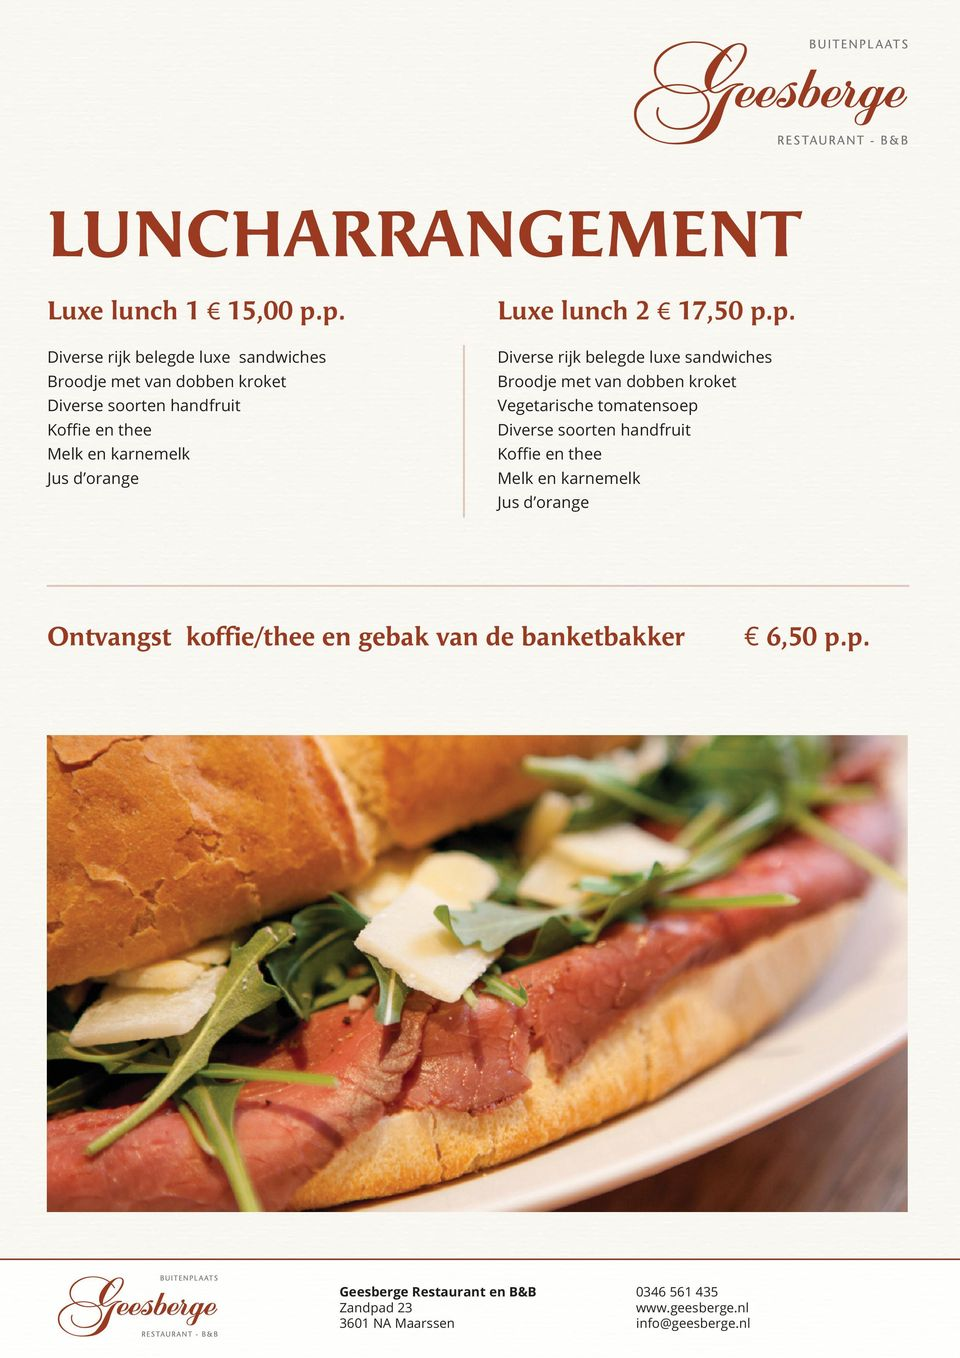 thee Melk en karnemelk Jus d orange Luxe lunch 2 17,50 p.